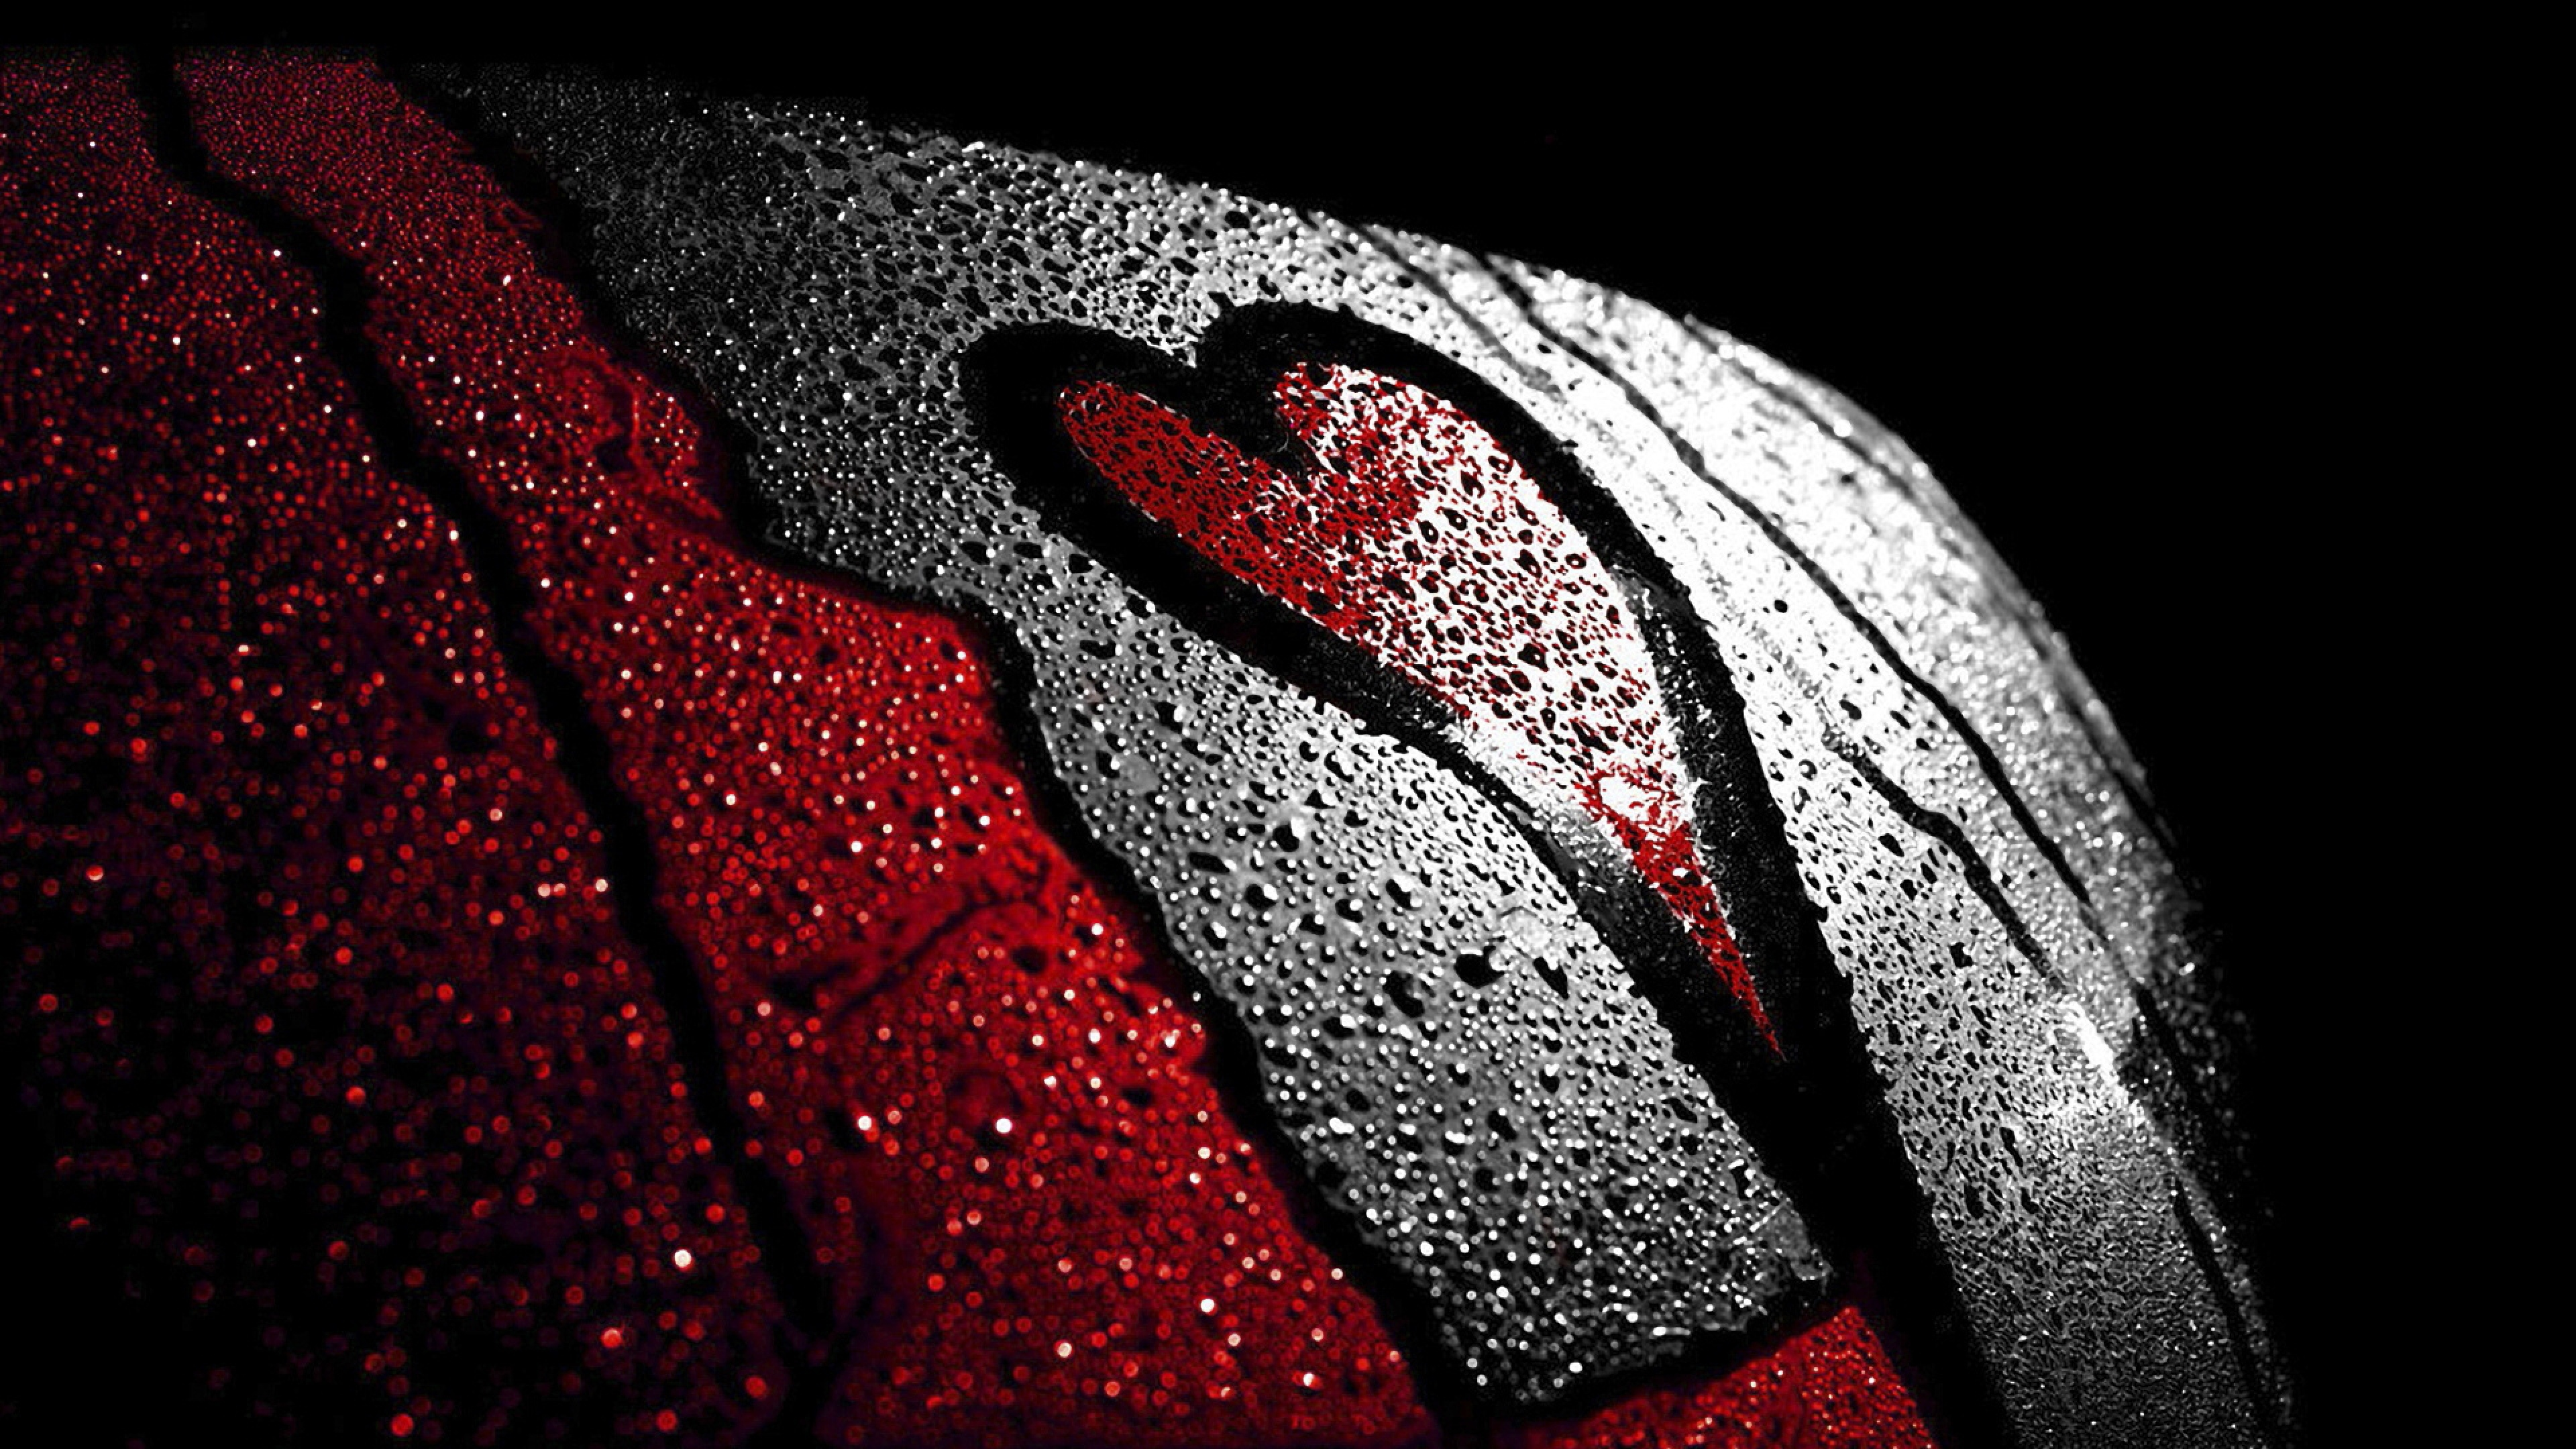 49 Red And Black 4k Wallpaper On Wallpapersafari